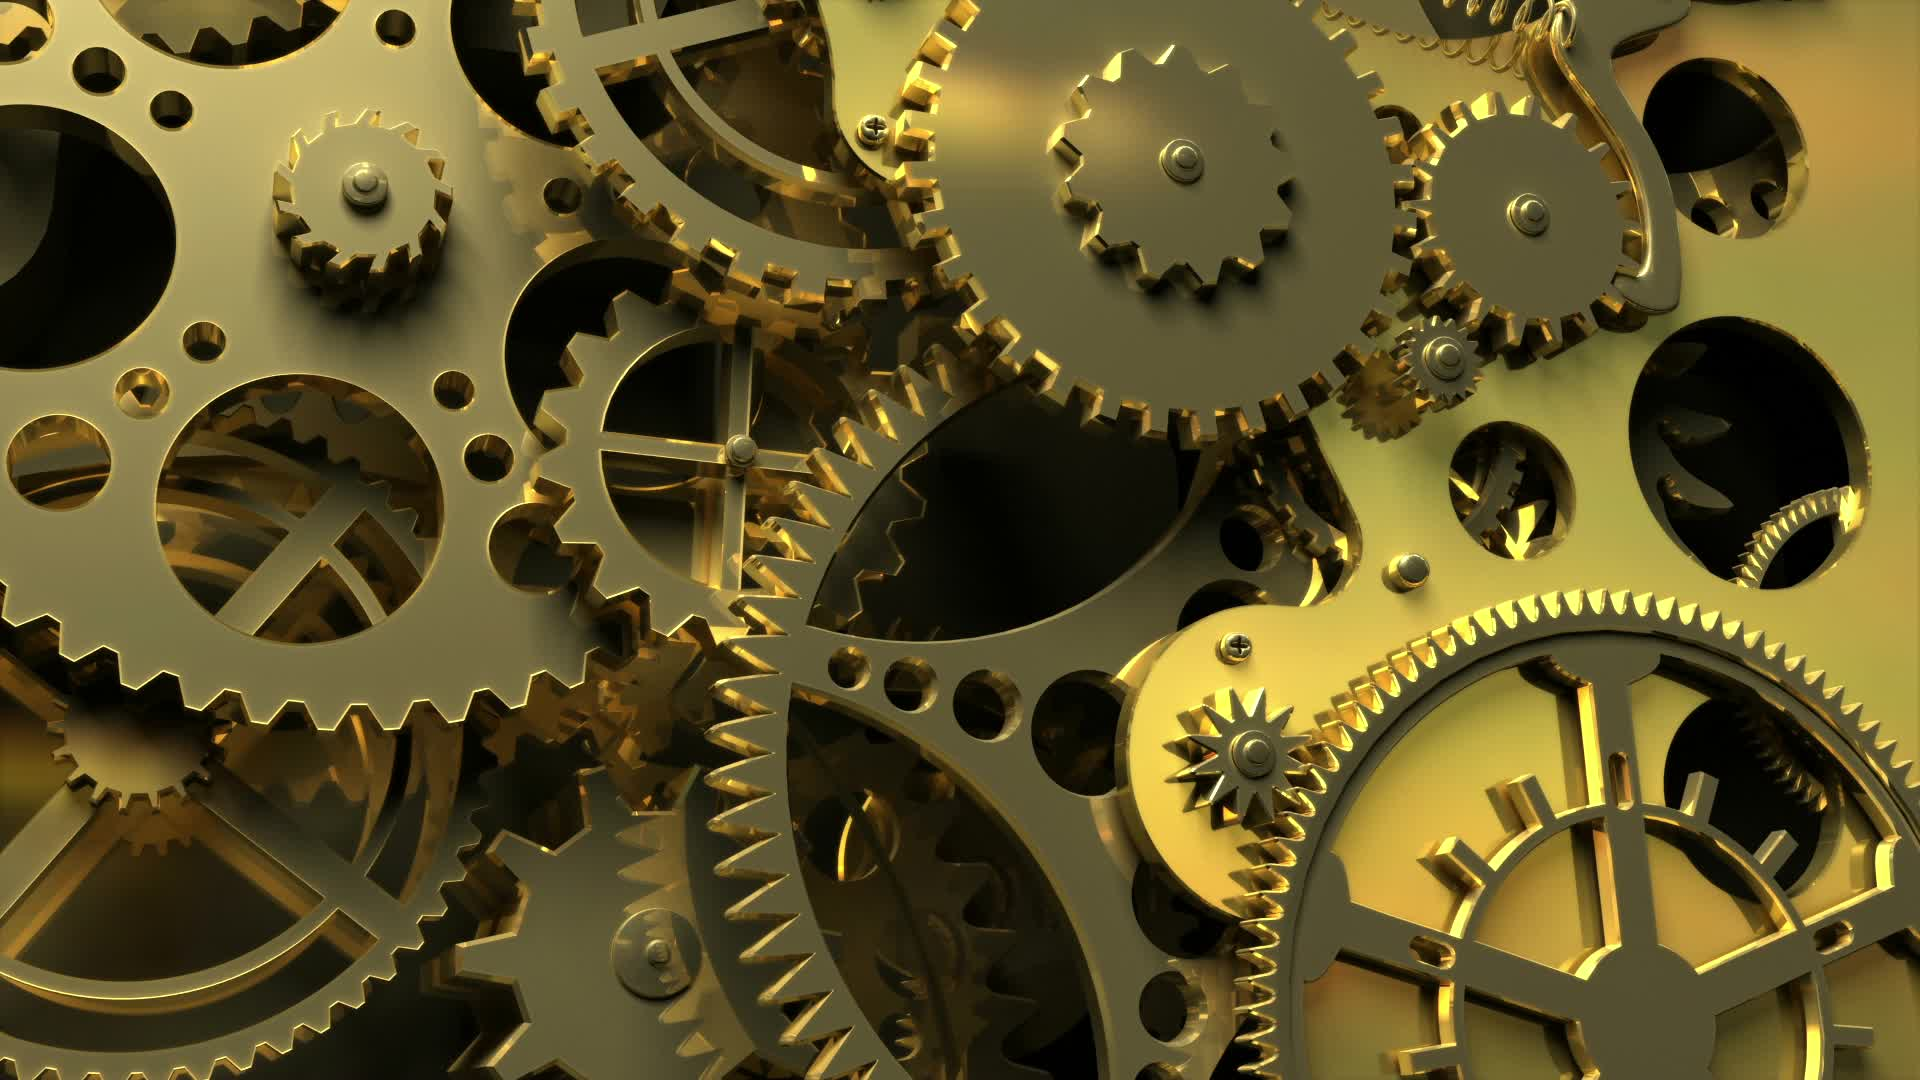 Abstract Gold Clockwork  3d Animation Stock Video 11600127